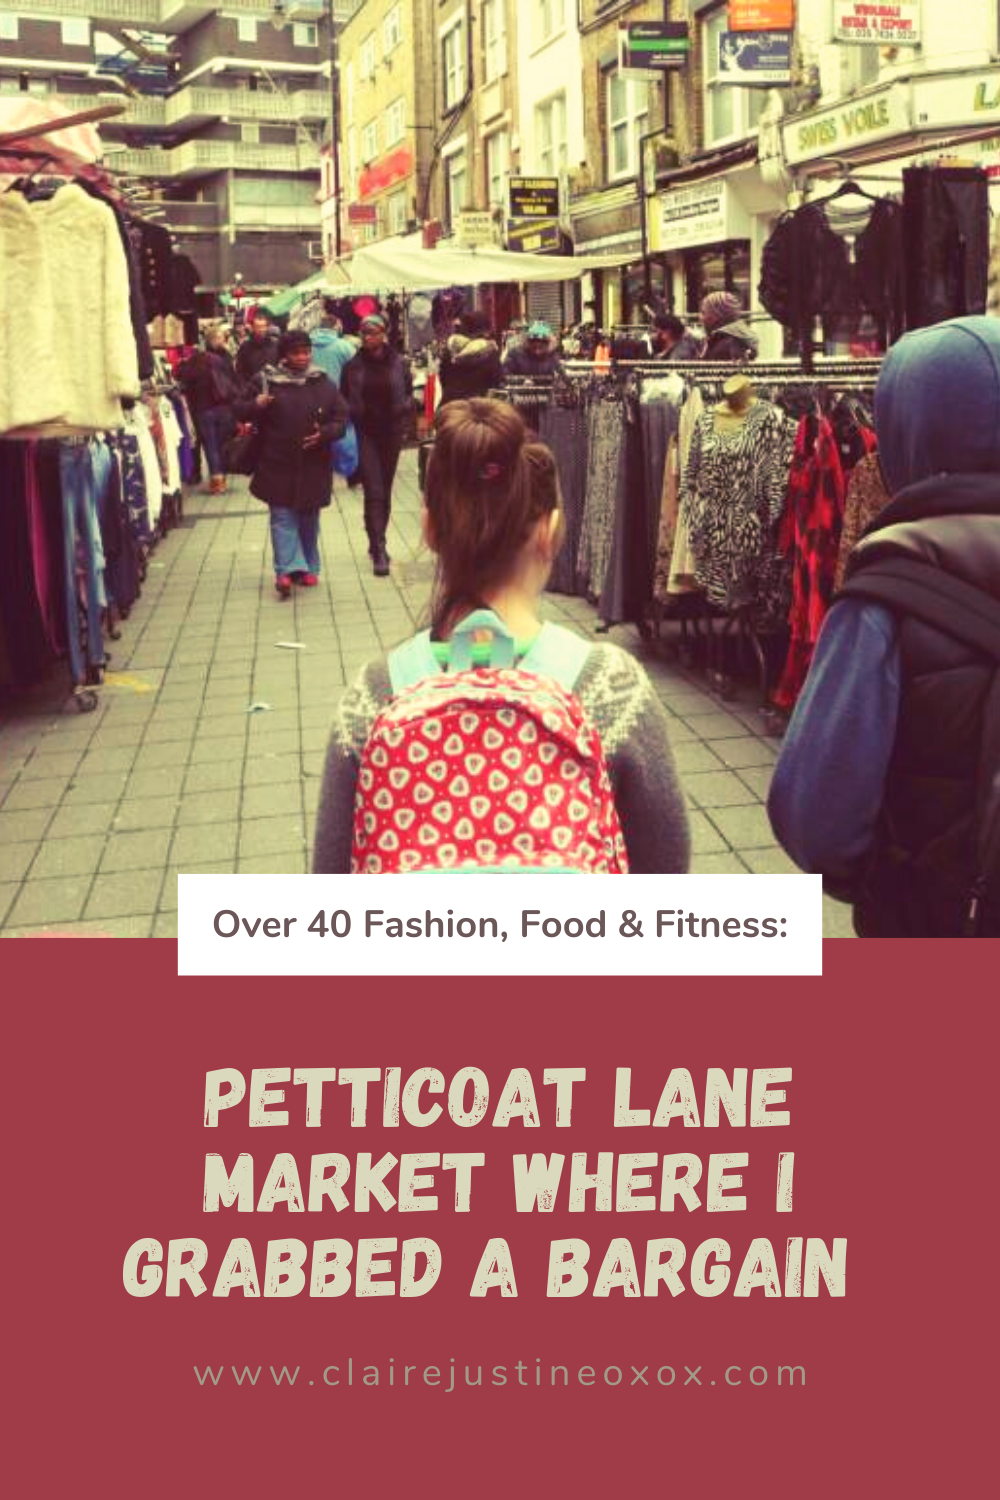 Petticoat Lane Market Where I Grabbed A Bargain